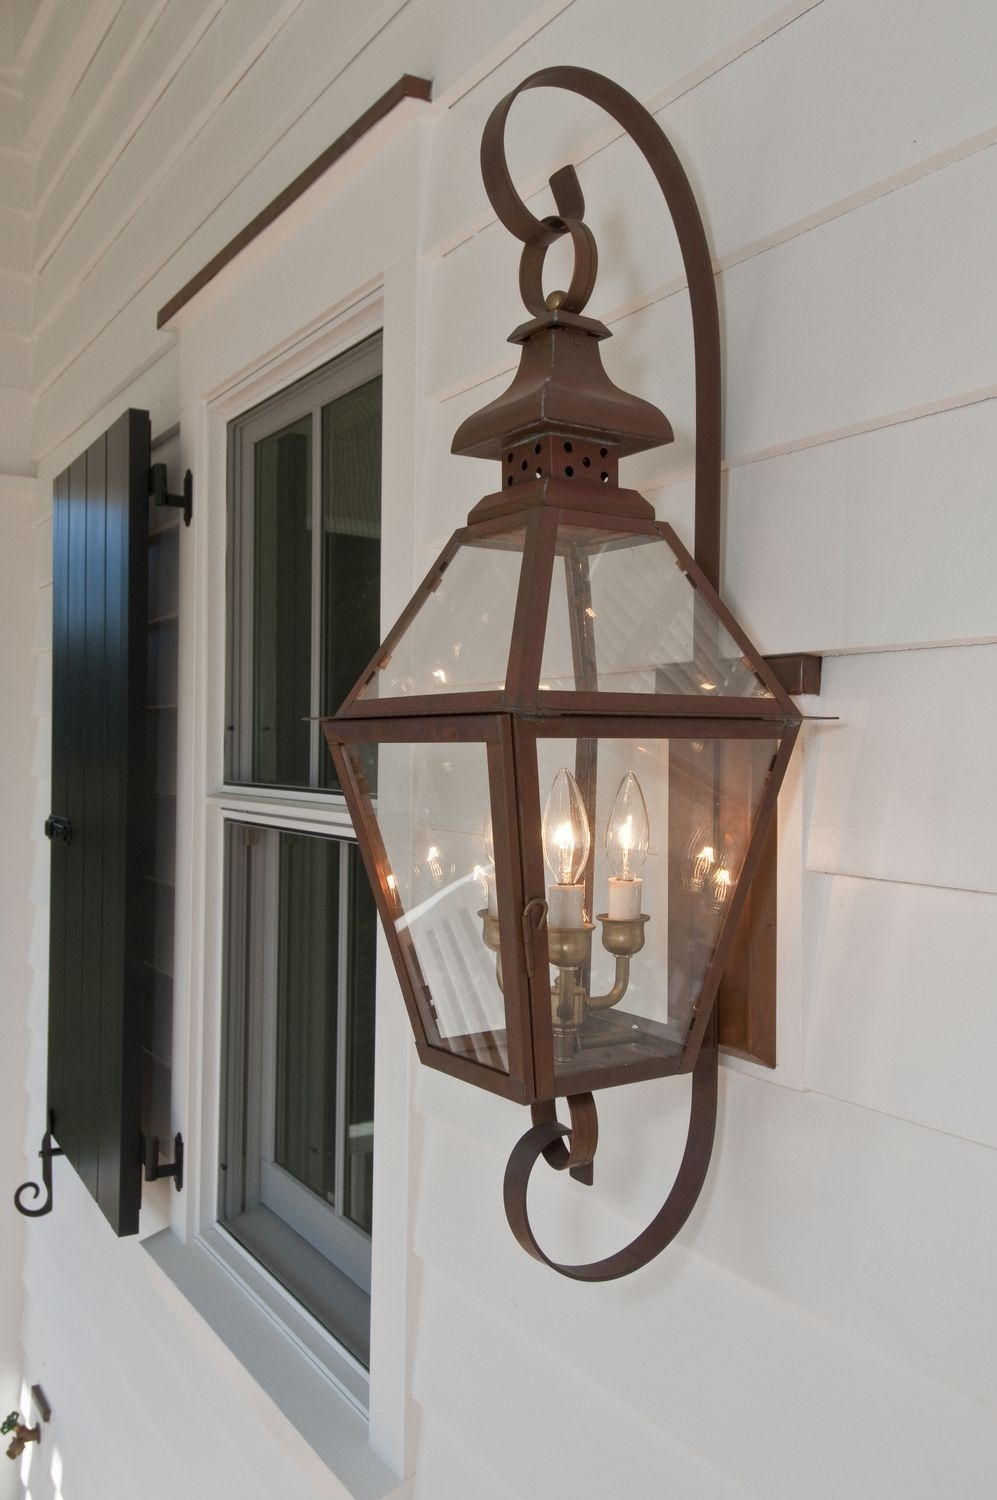 The Tradd Street Ii Lantern — Gas Or Electric | The Collection inside Outdoor Electric Lanterns (Image 19 of 20)